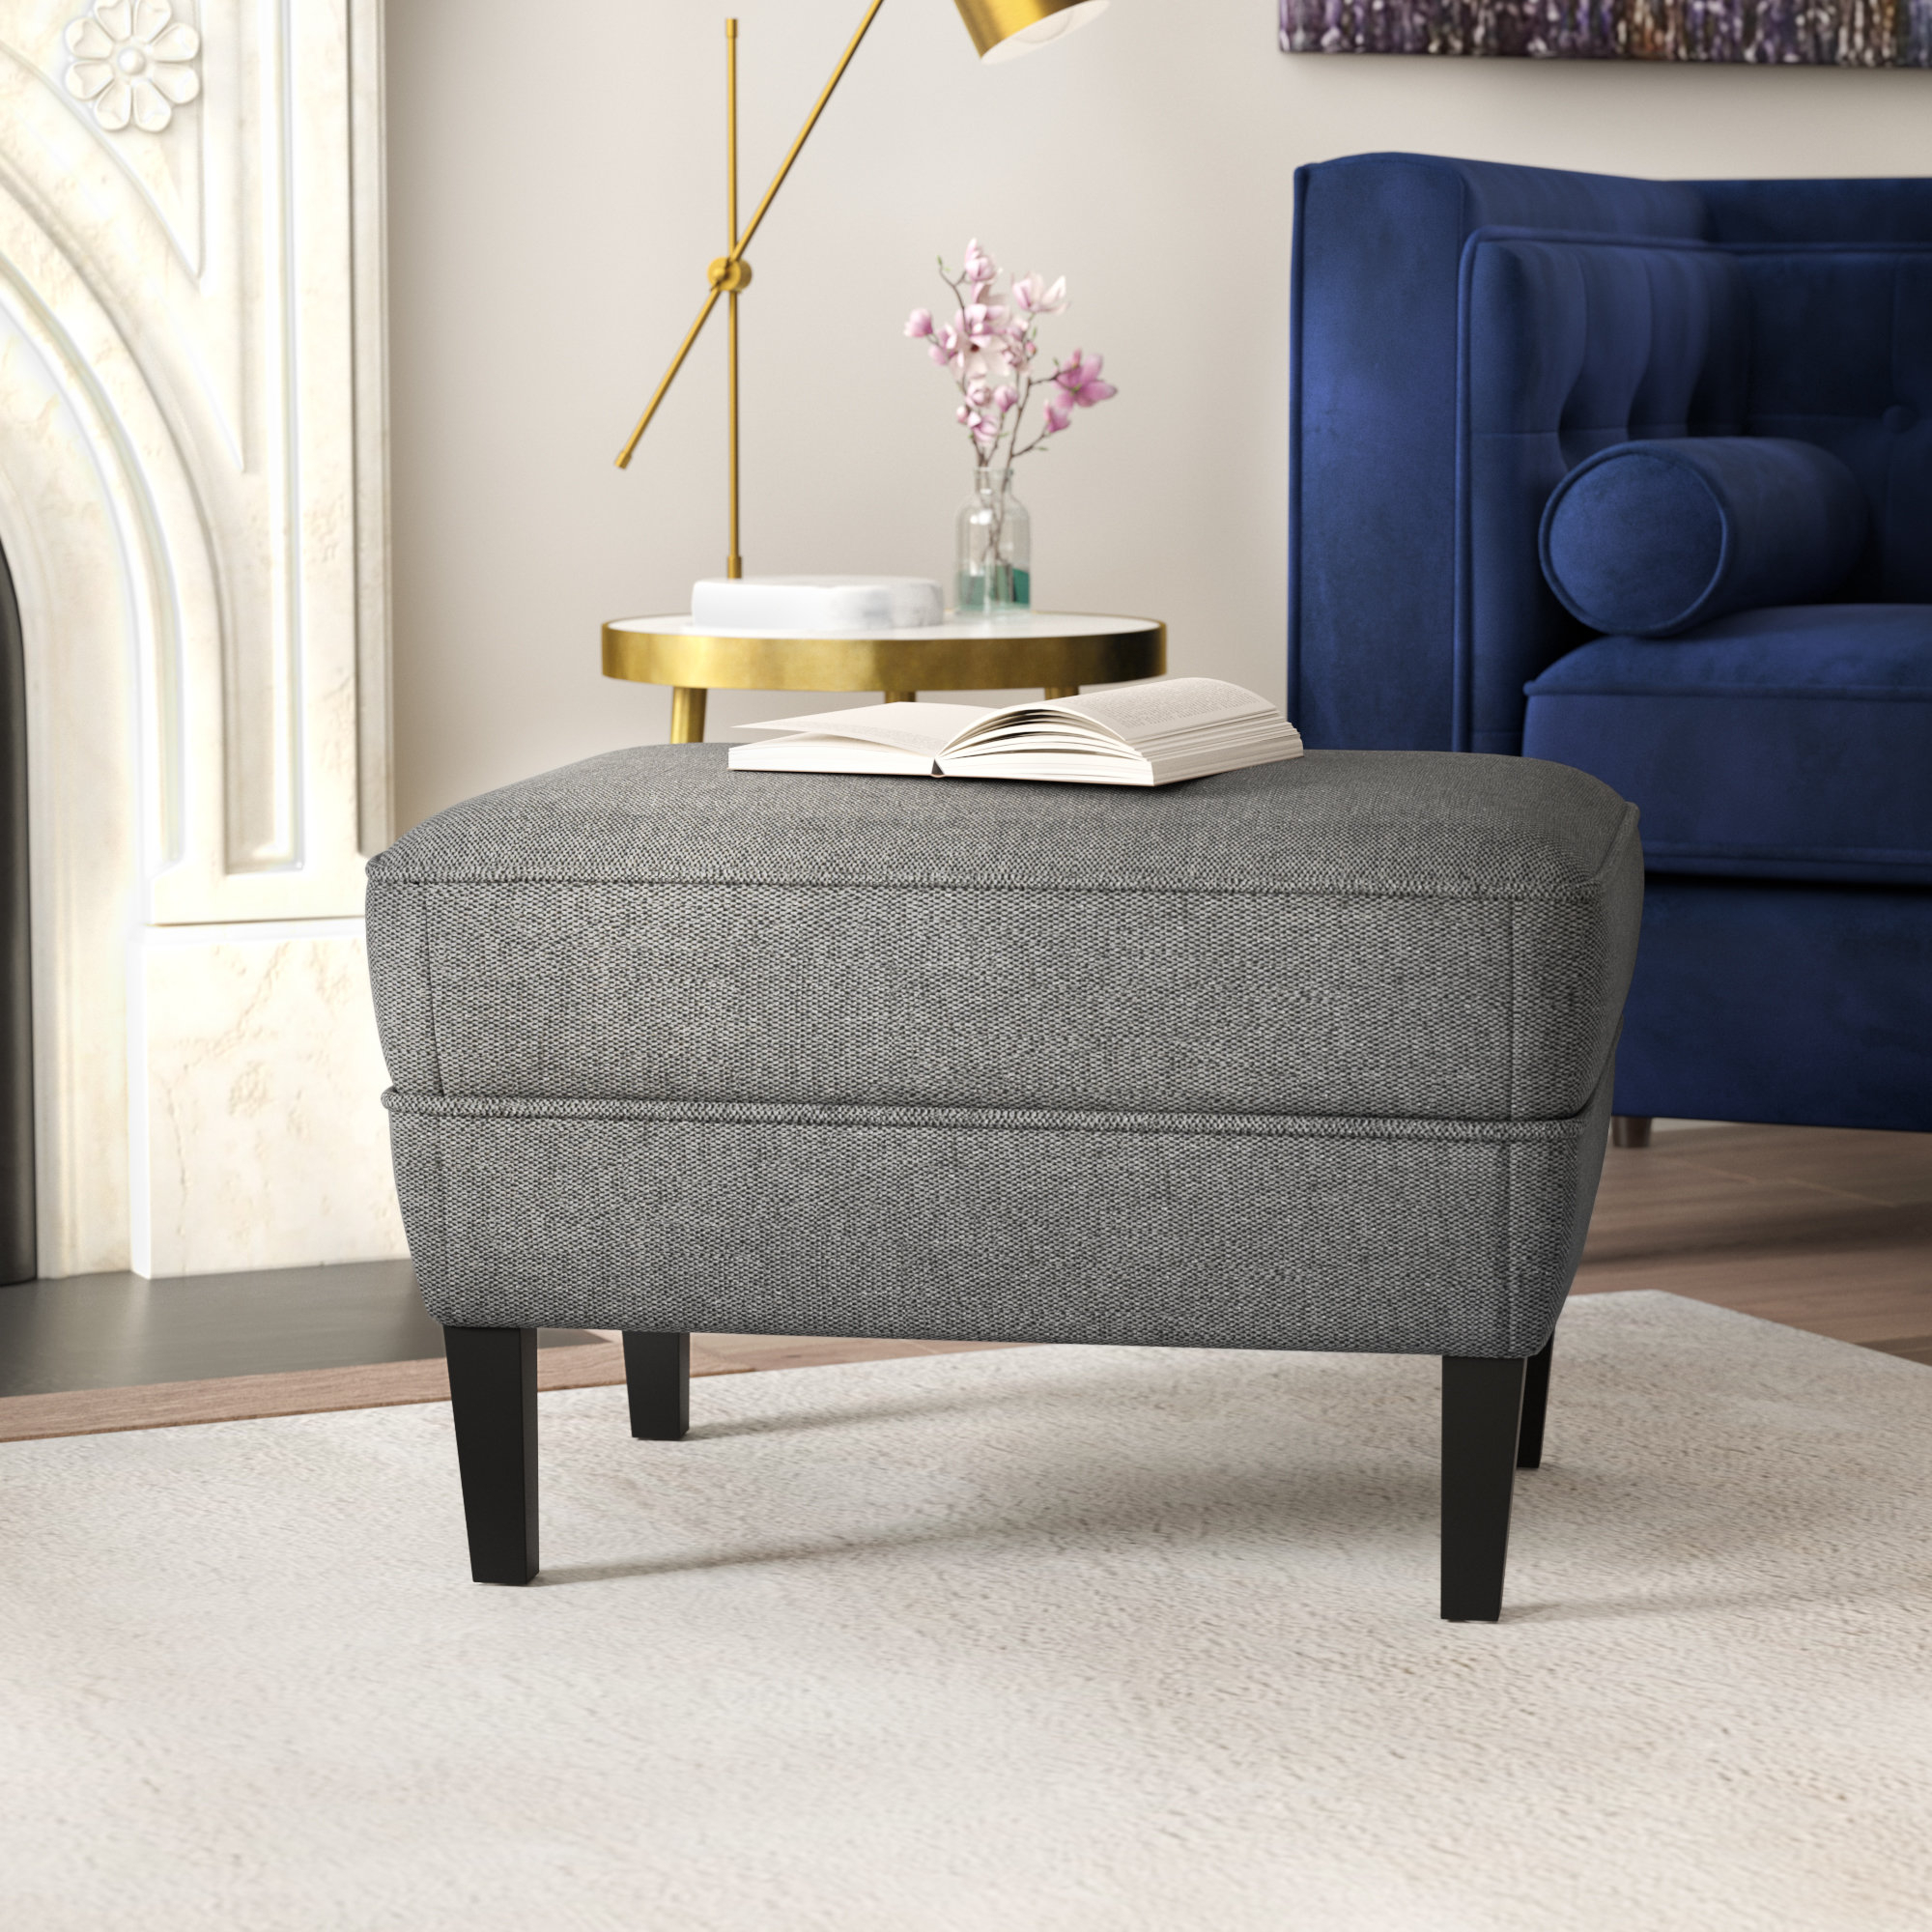 Willa Arlo Interiors Aquarius Ottoman & Reviews | Wayfair Inside Aquarius Dark Grey Sofa Chairs (Image 23 of 25)